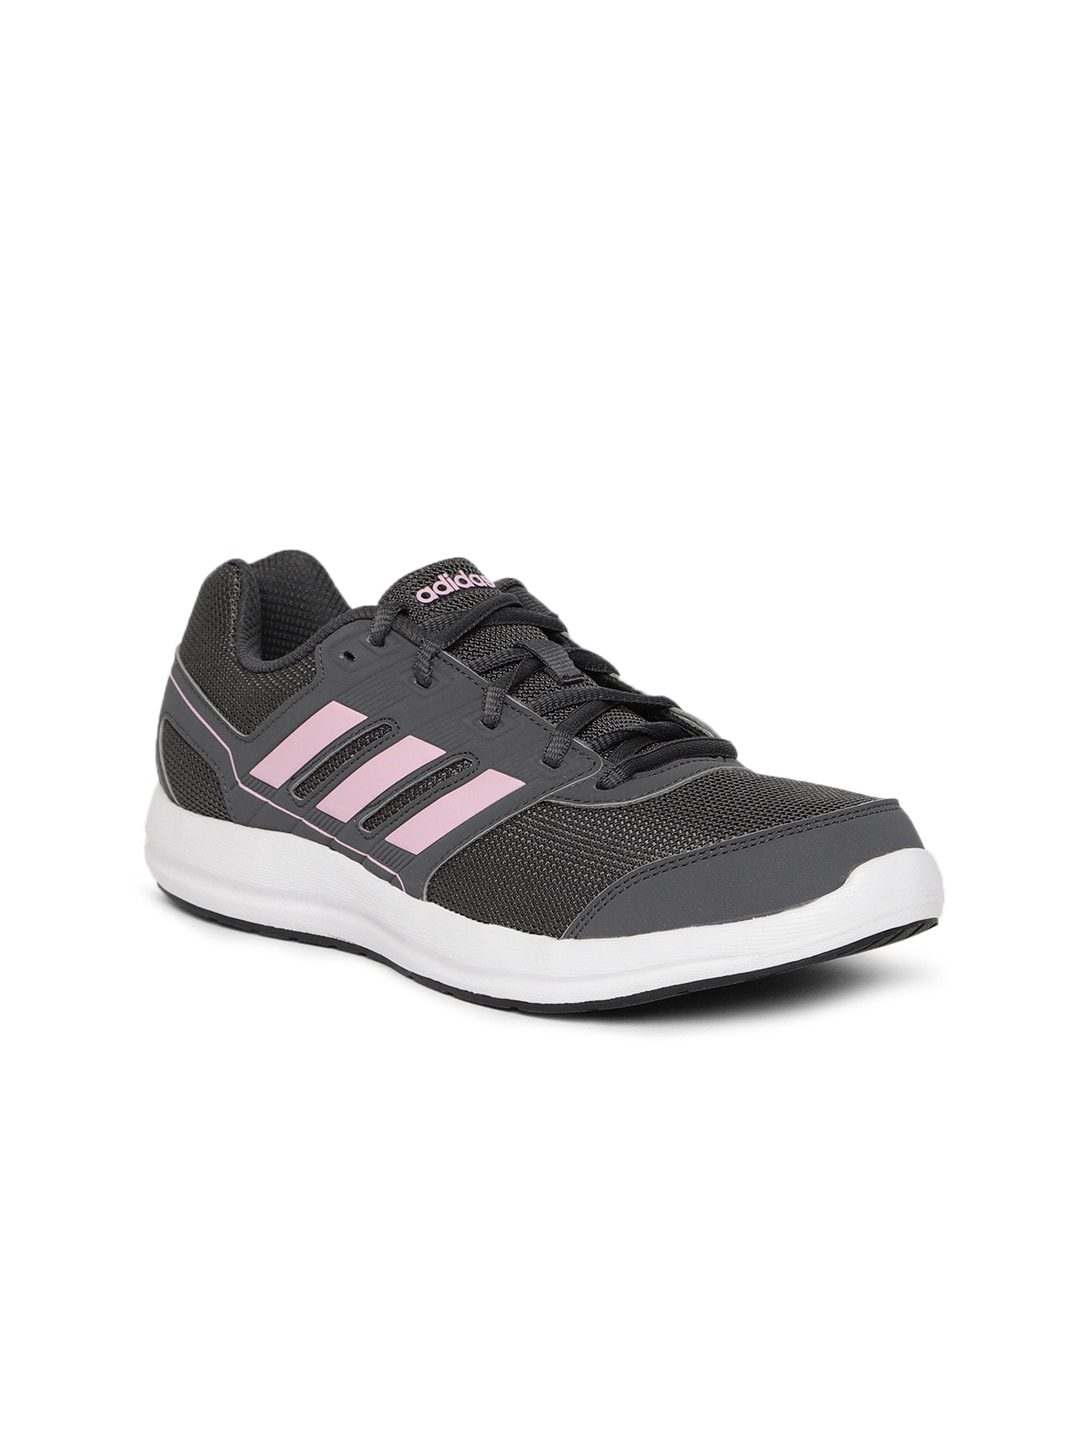 2ccf2bc297d ... adidas rose gold and black sneakers